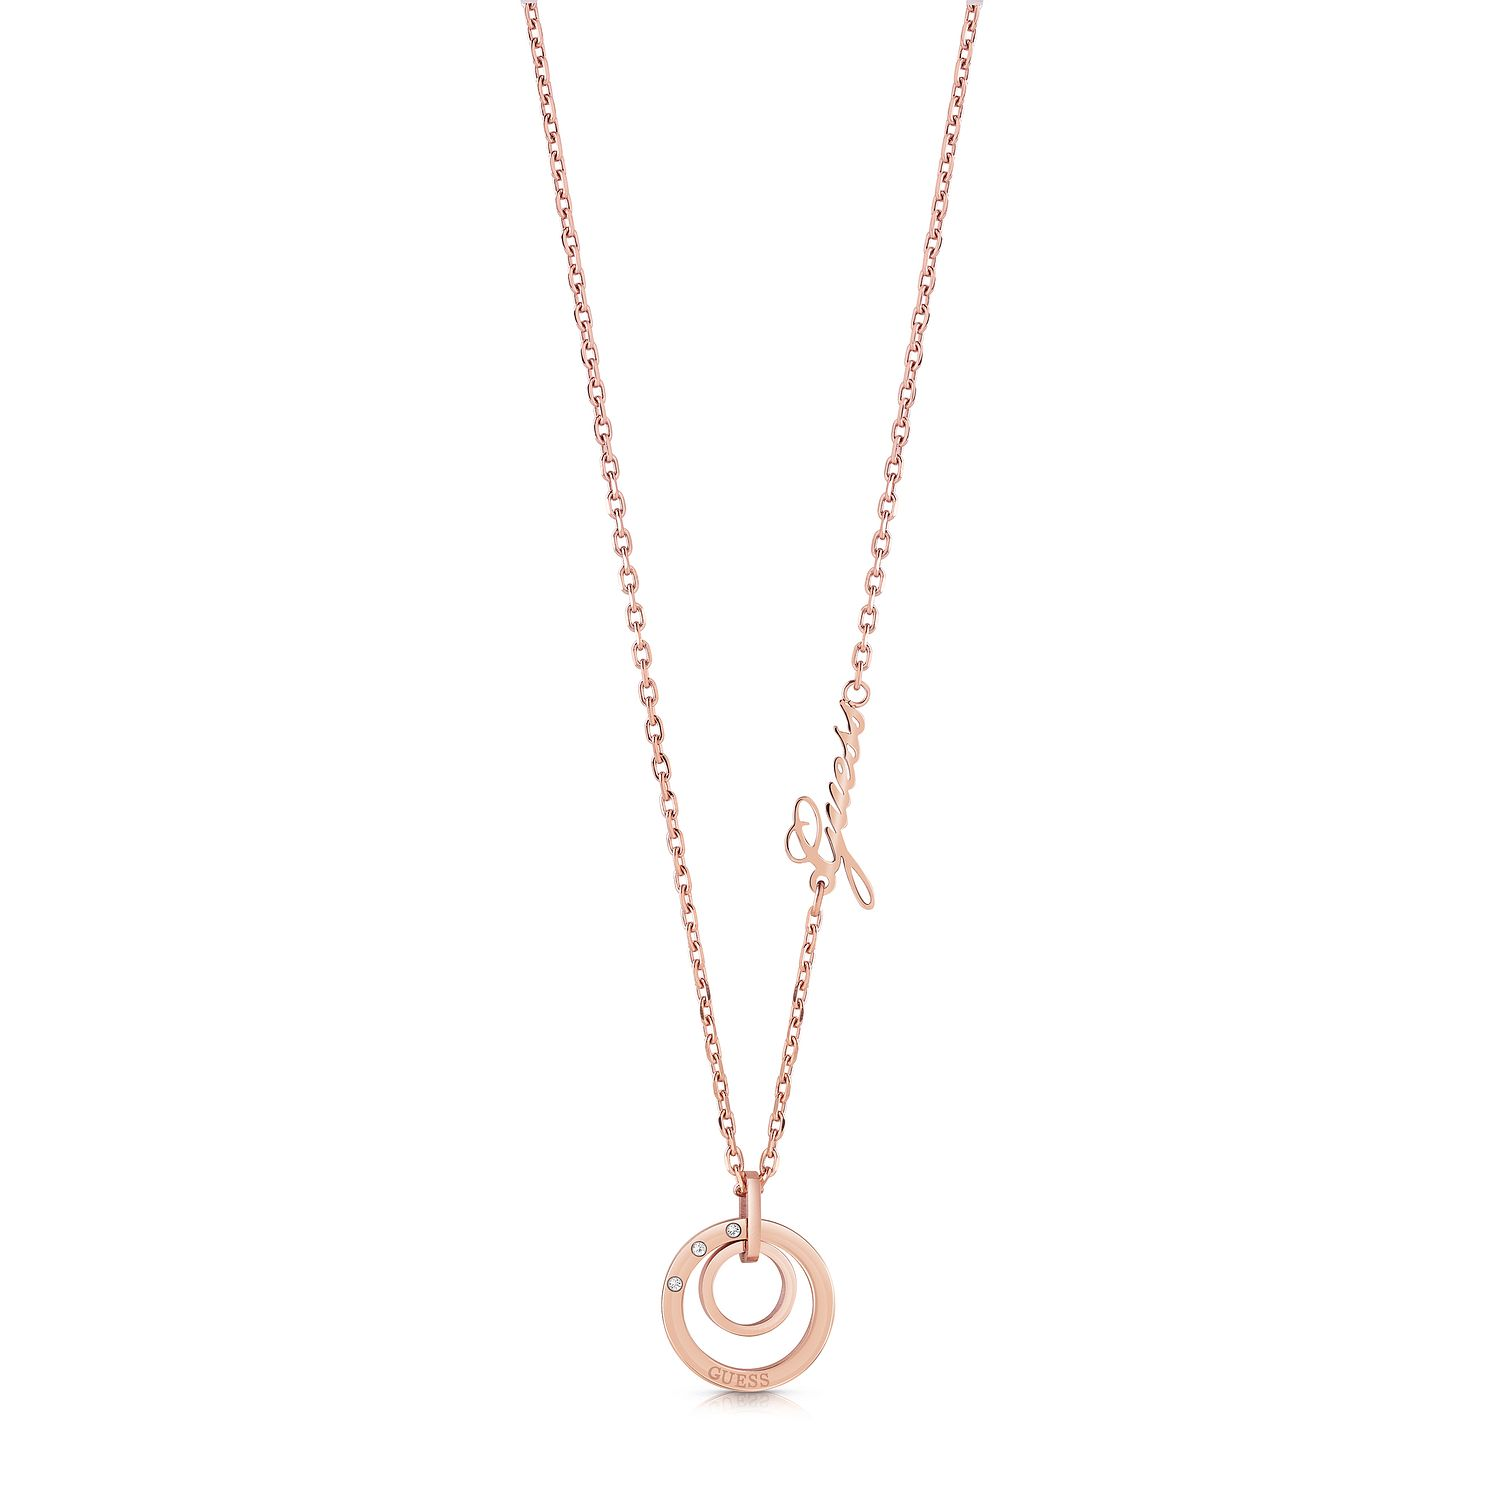 Guess Rose Gold Tone Swarovski Crystal Circle Necklace - Product number 5922321